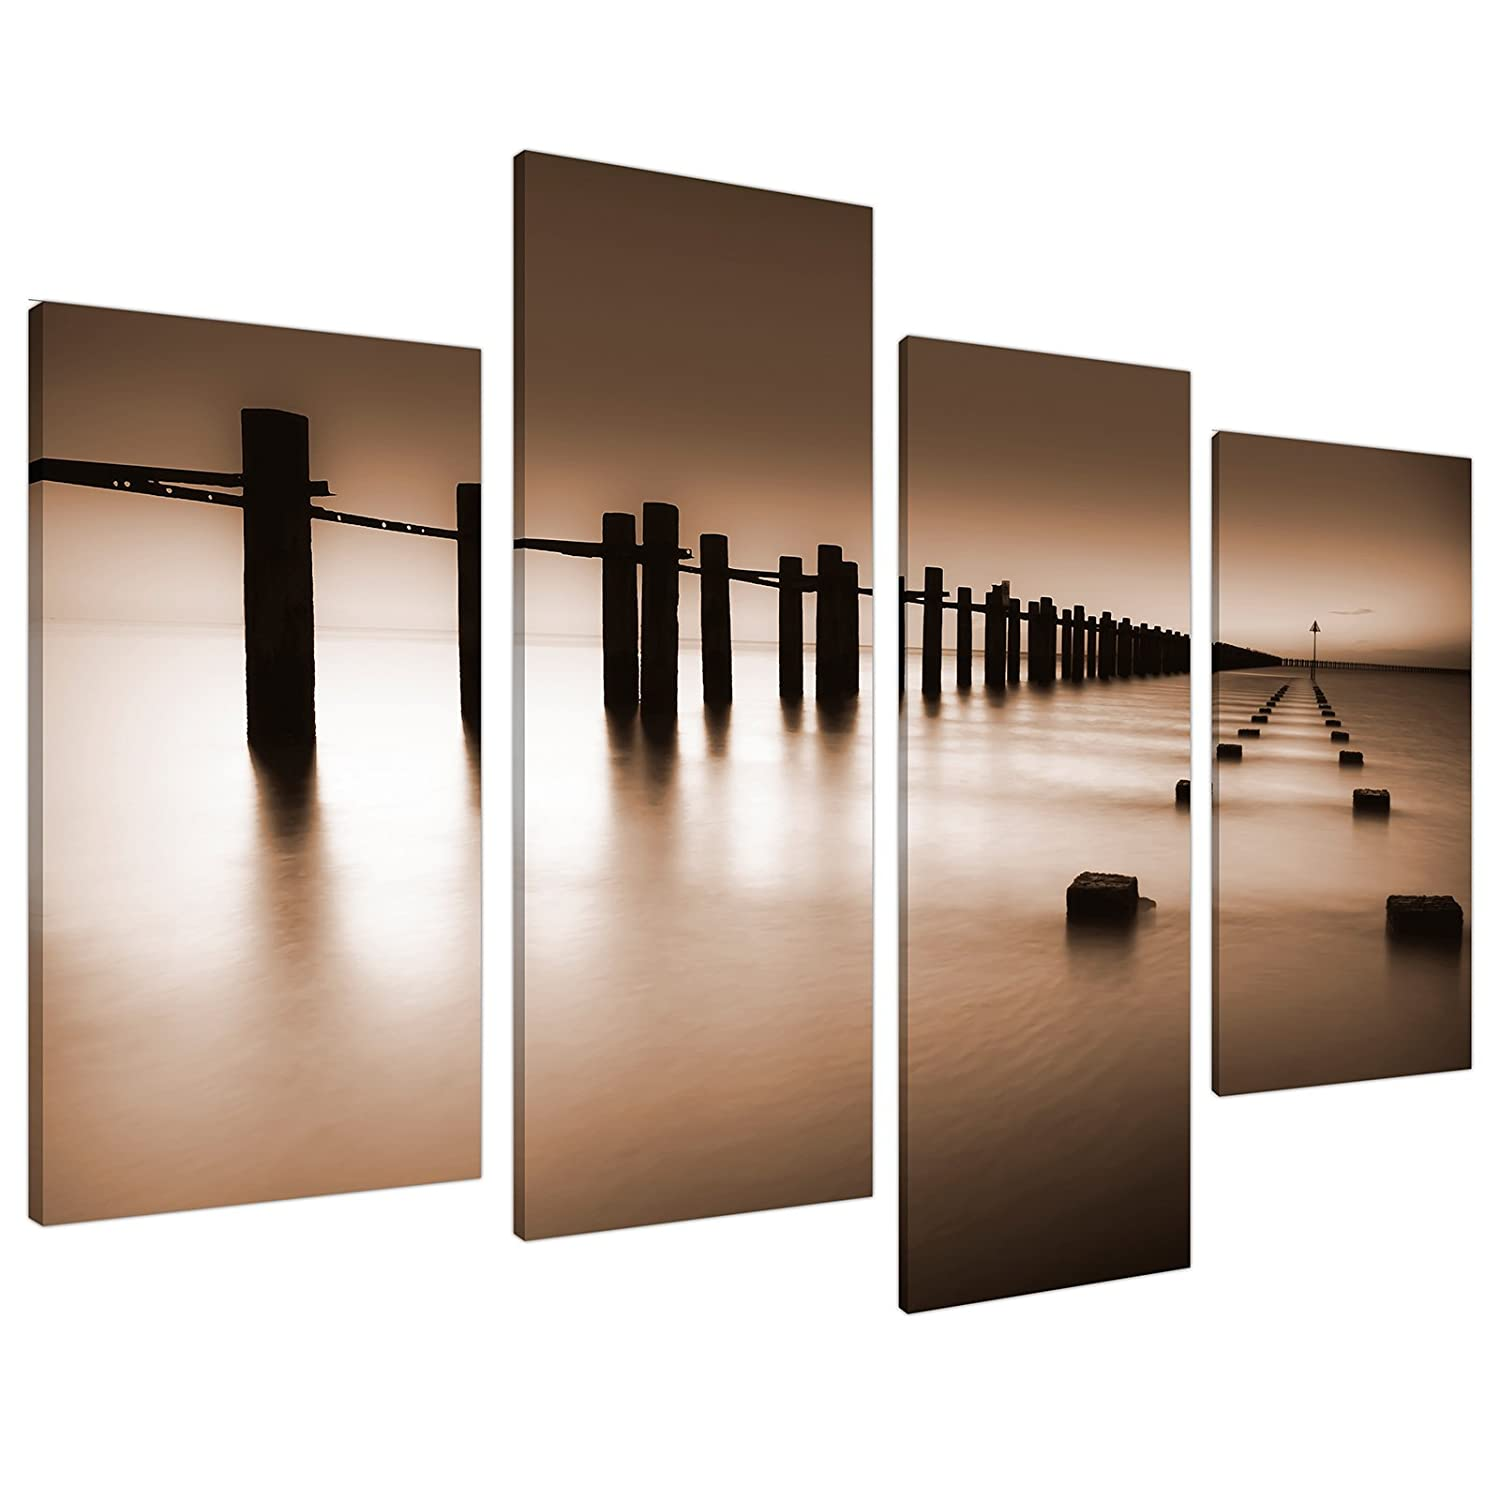 Large Brown Living Room Landscape Canvas Wall Art 130cm Pictures 4088:  Amazon.co.uk: Kitchen U0026 Home Part 41